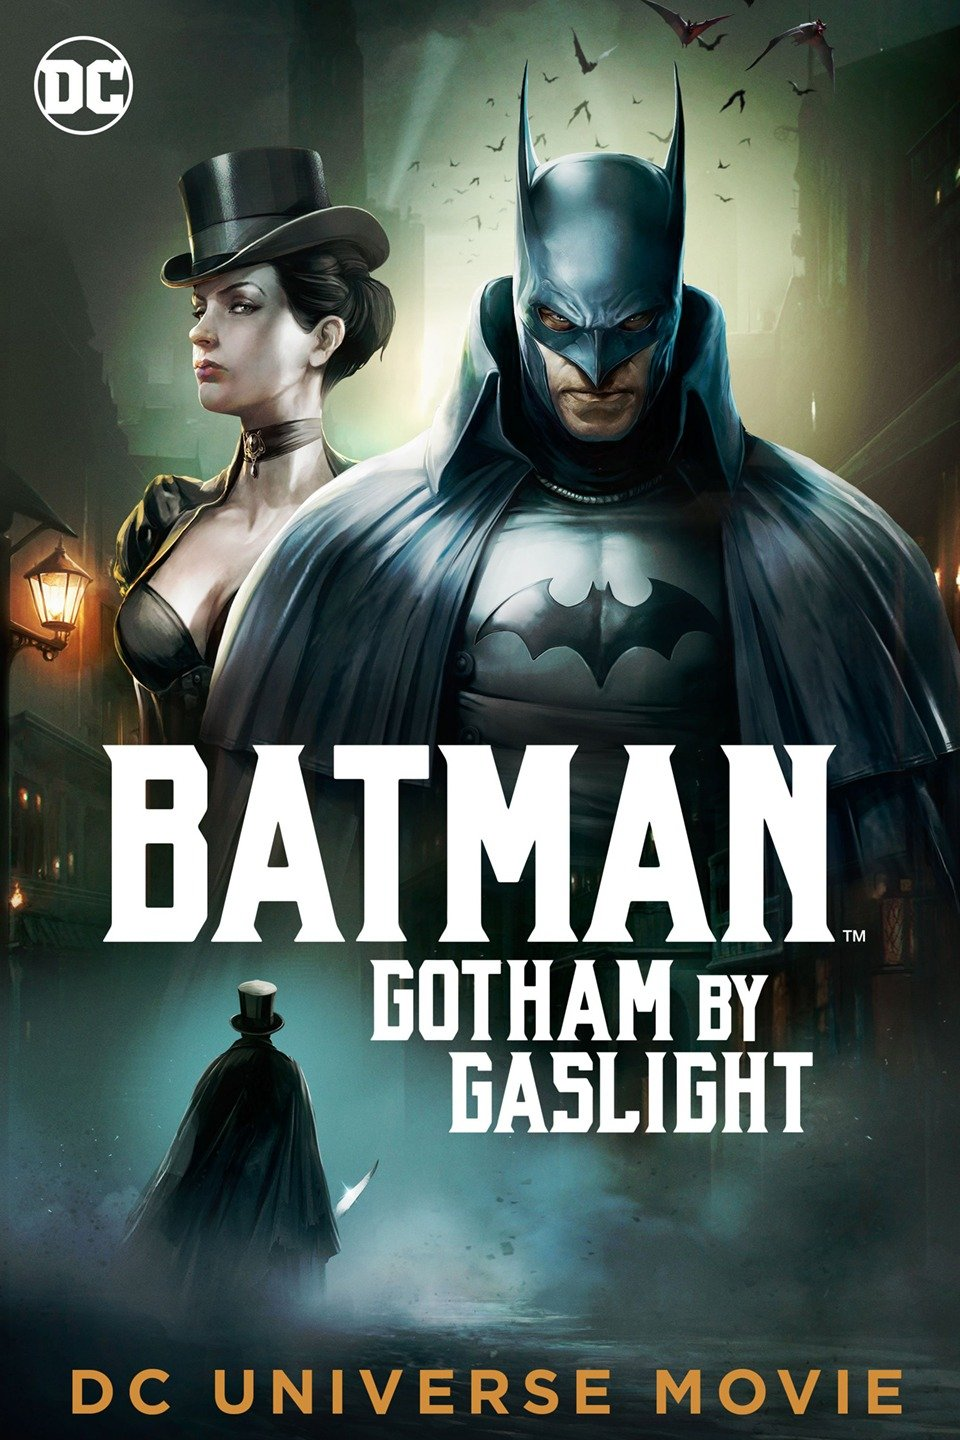 Batman: Gotham by Gaslight-Batman: Gotham by Gaslight